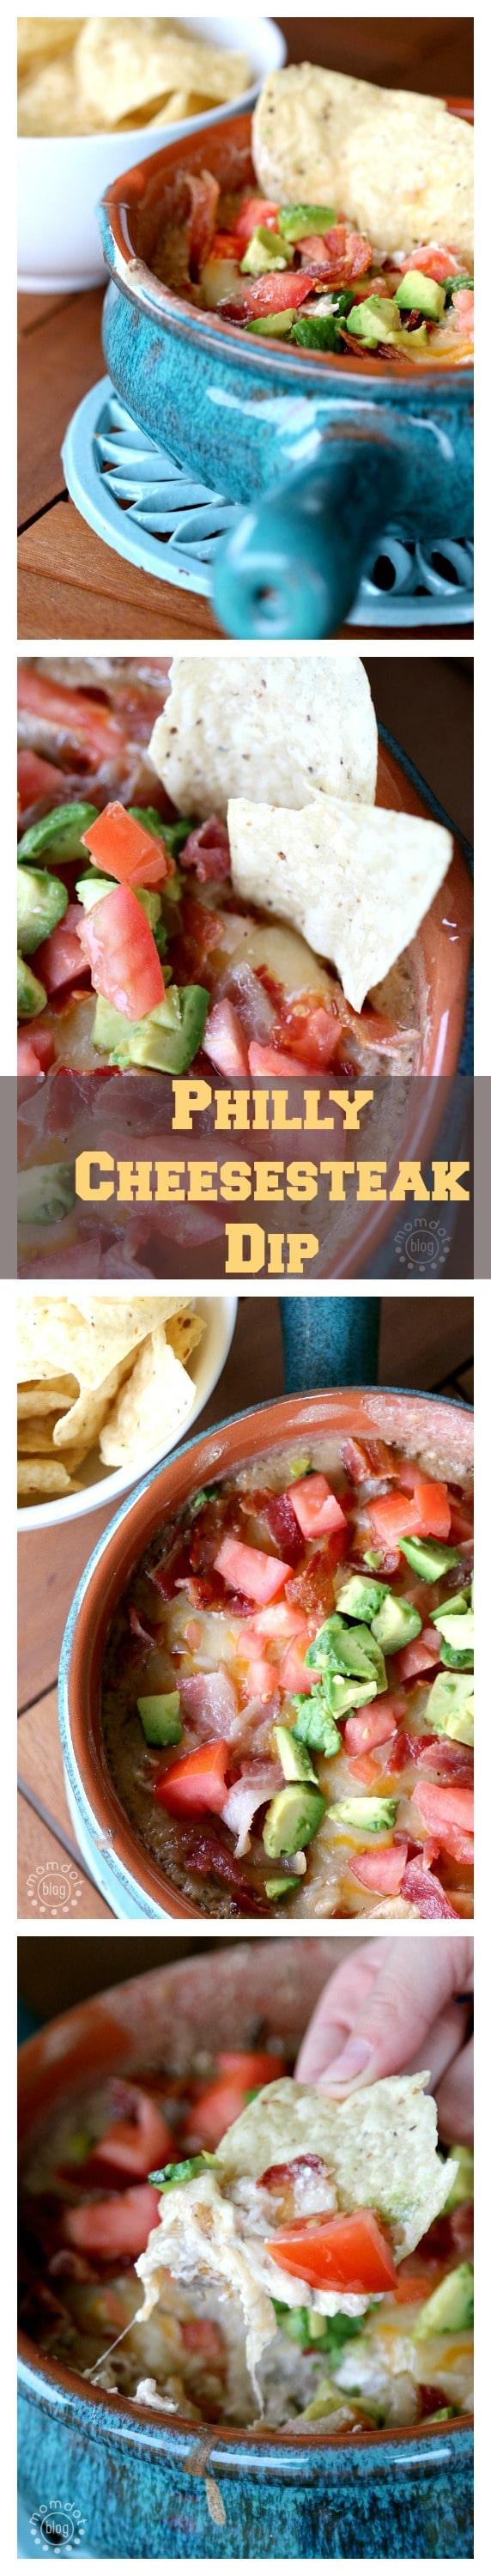 Philly Cheese Steak Recipe, perfect for football games, new years, and big parties - whip up something special